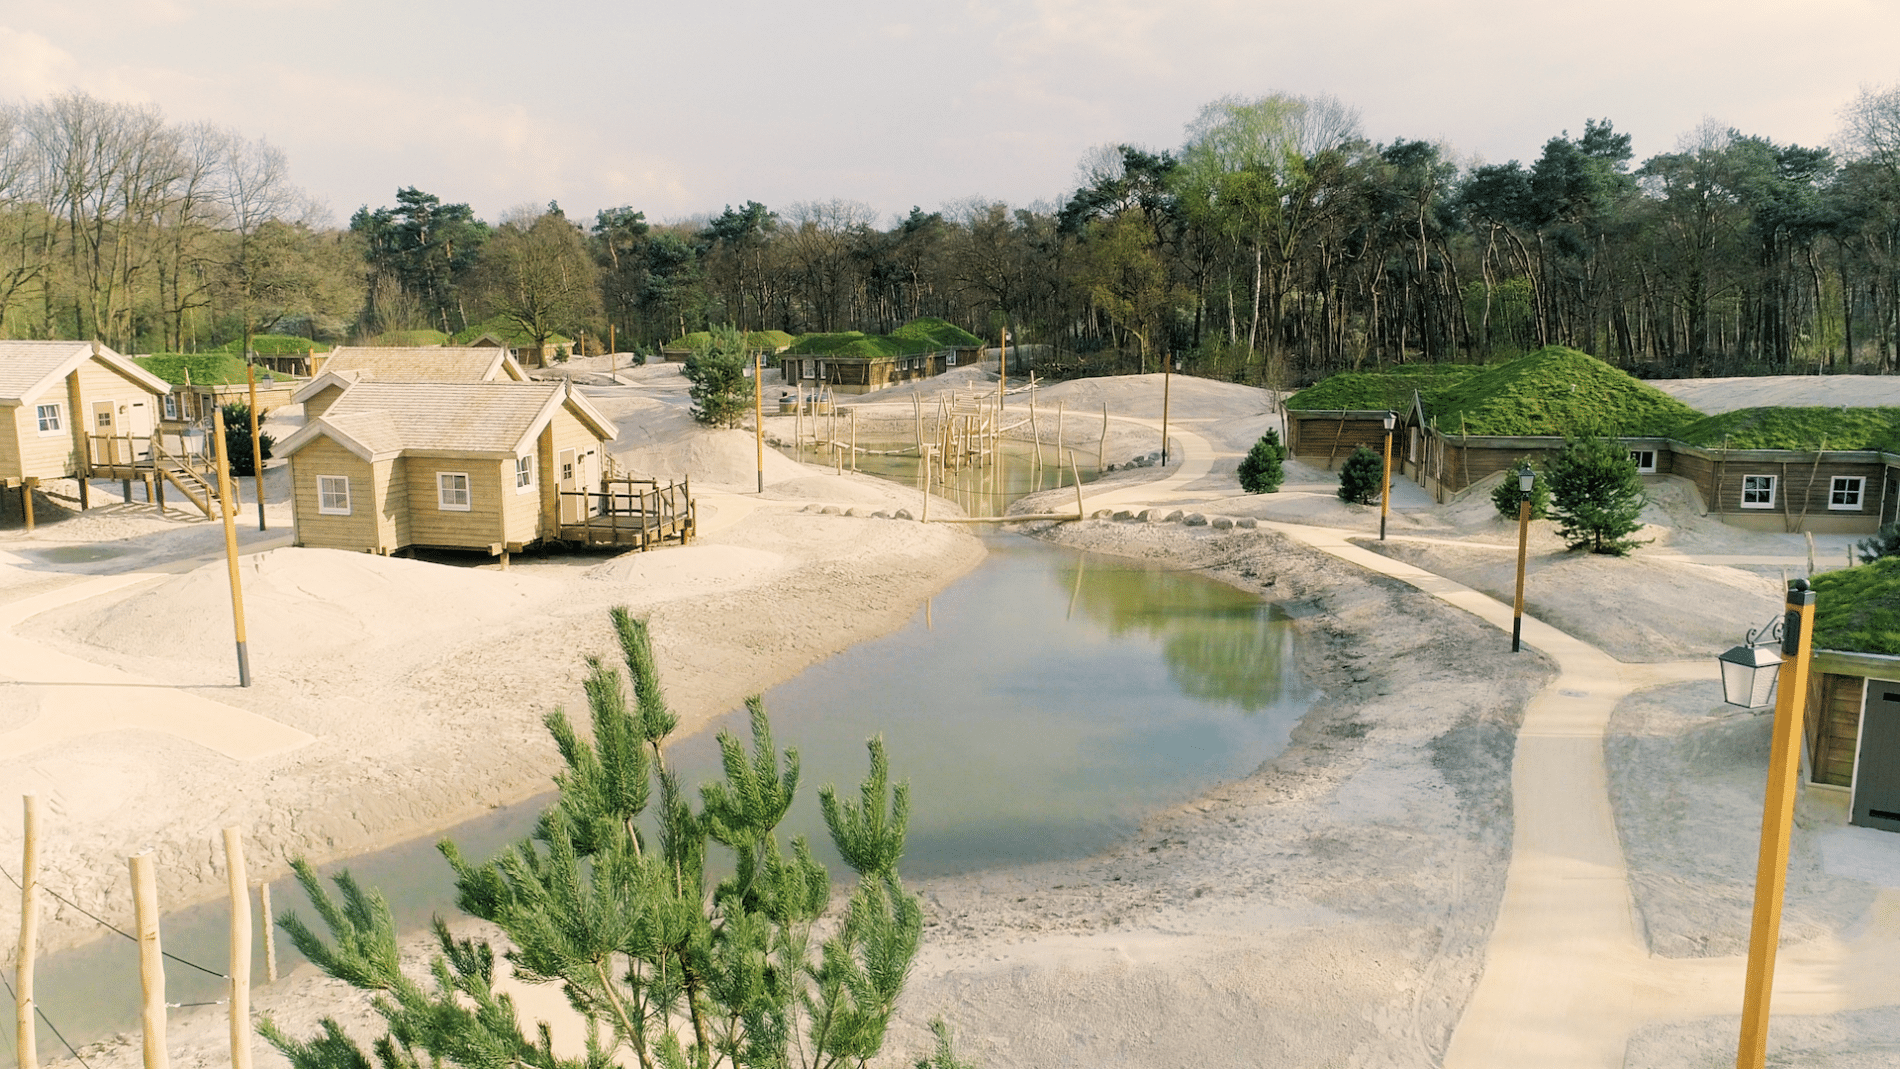 Efteling Loonsche Land accommodation within sandy dunes